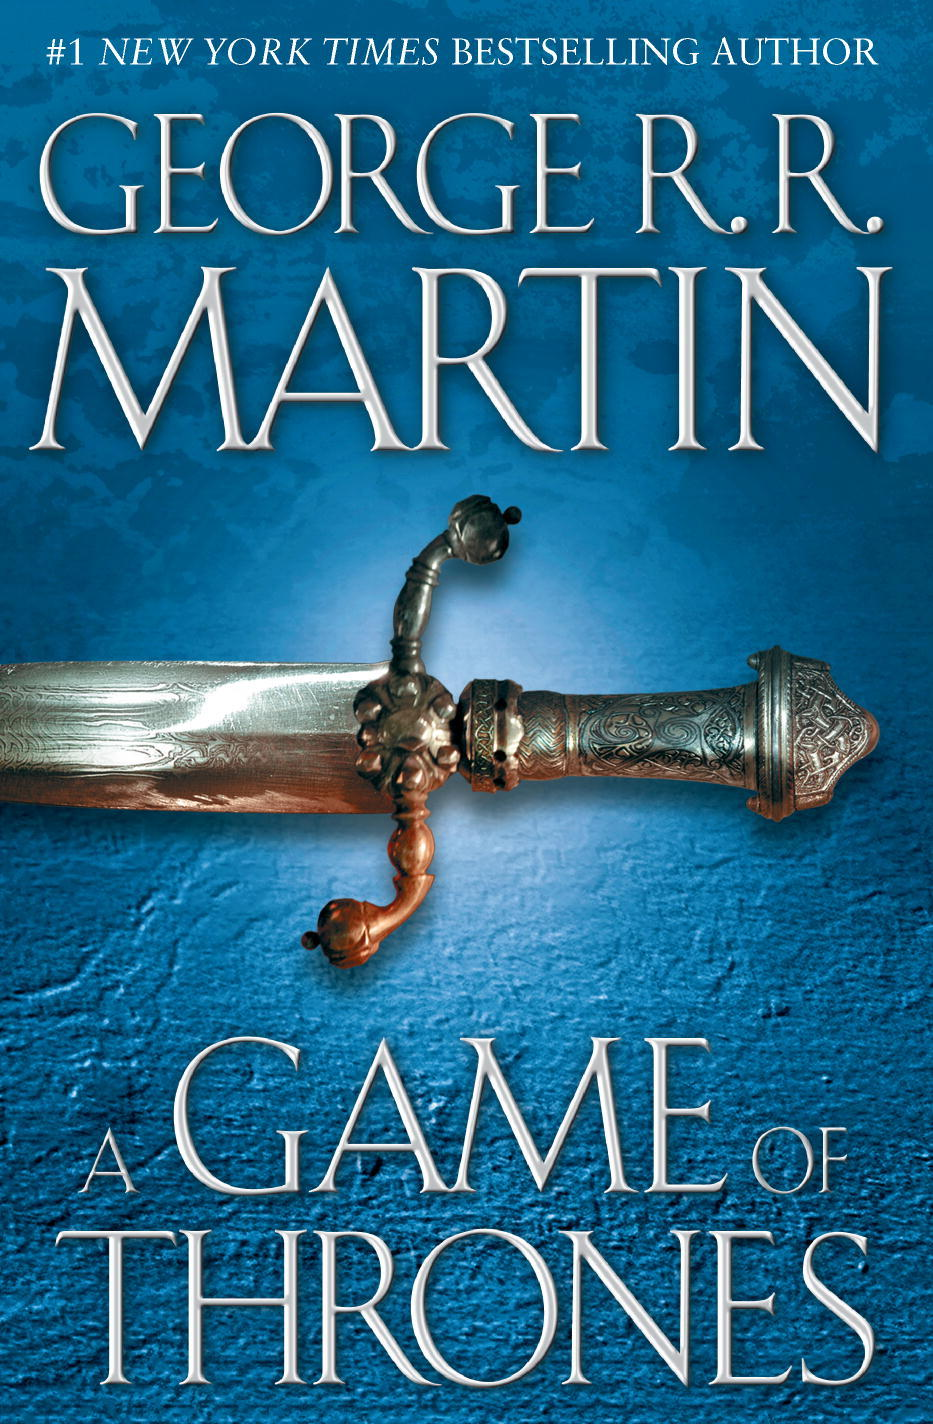 BLOGGED: A GAME OF THRONES